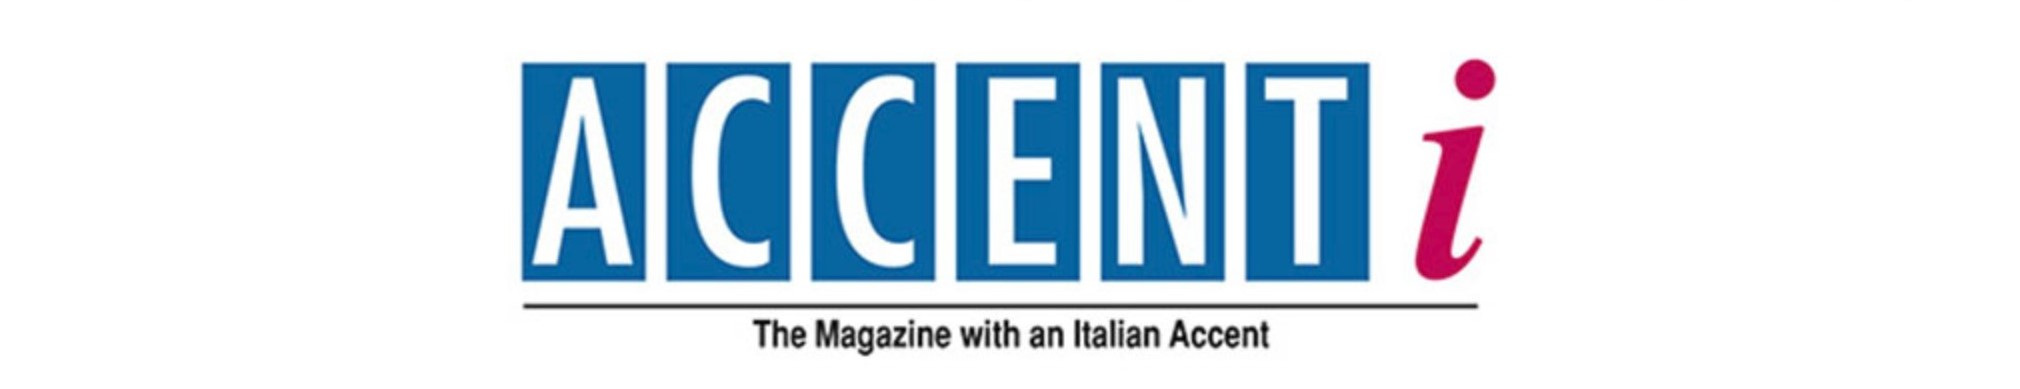 2019 Accenti Magazine Photo Contest